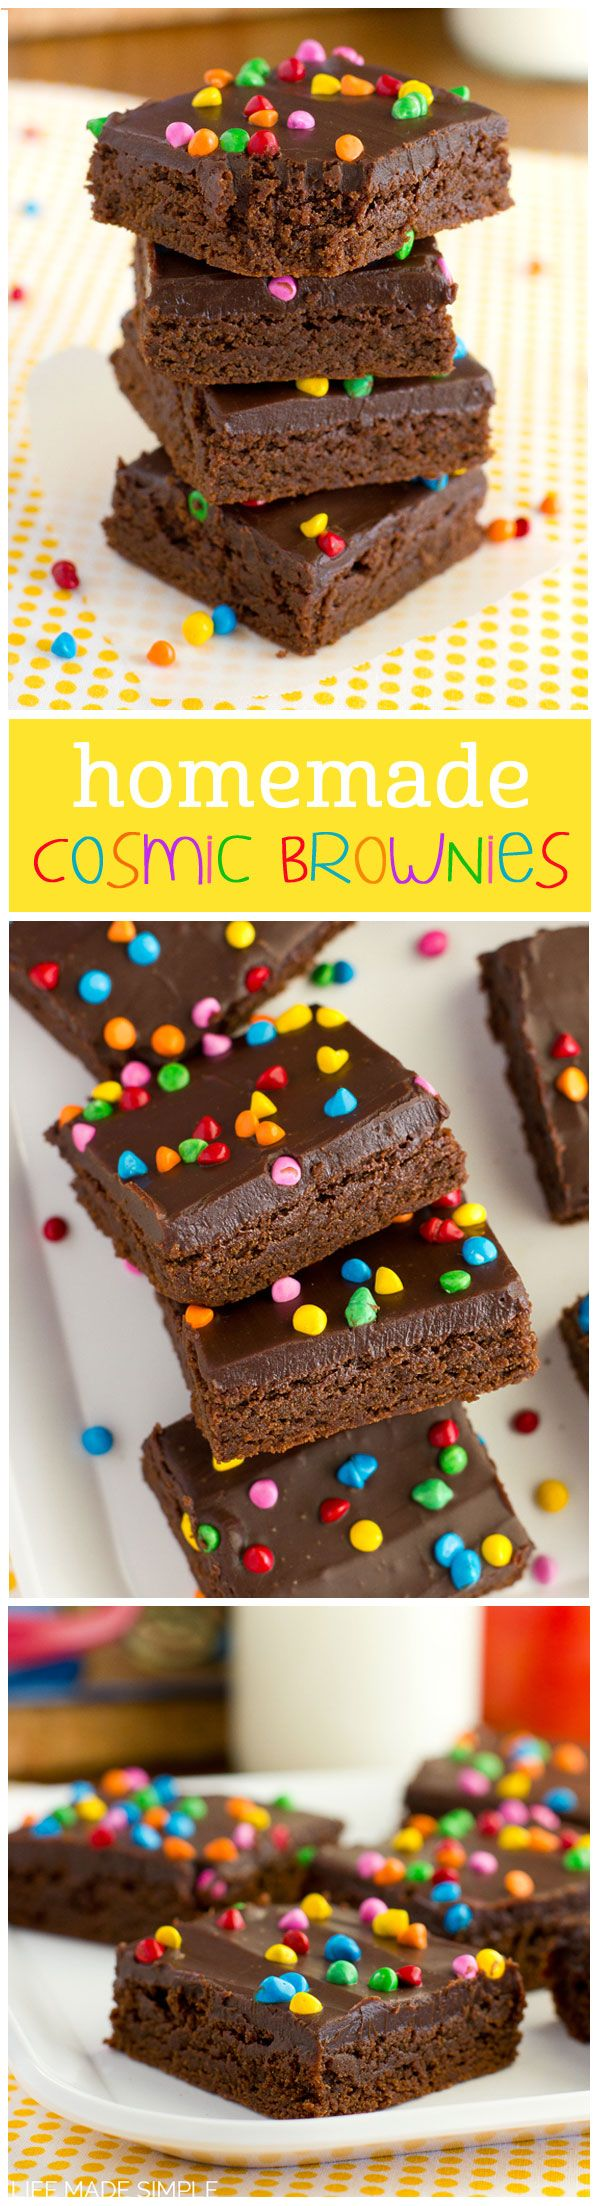 Homemade Cosmic Brownies | Life Made Simple